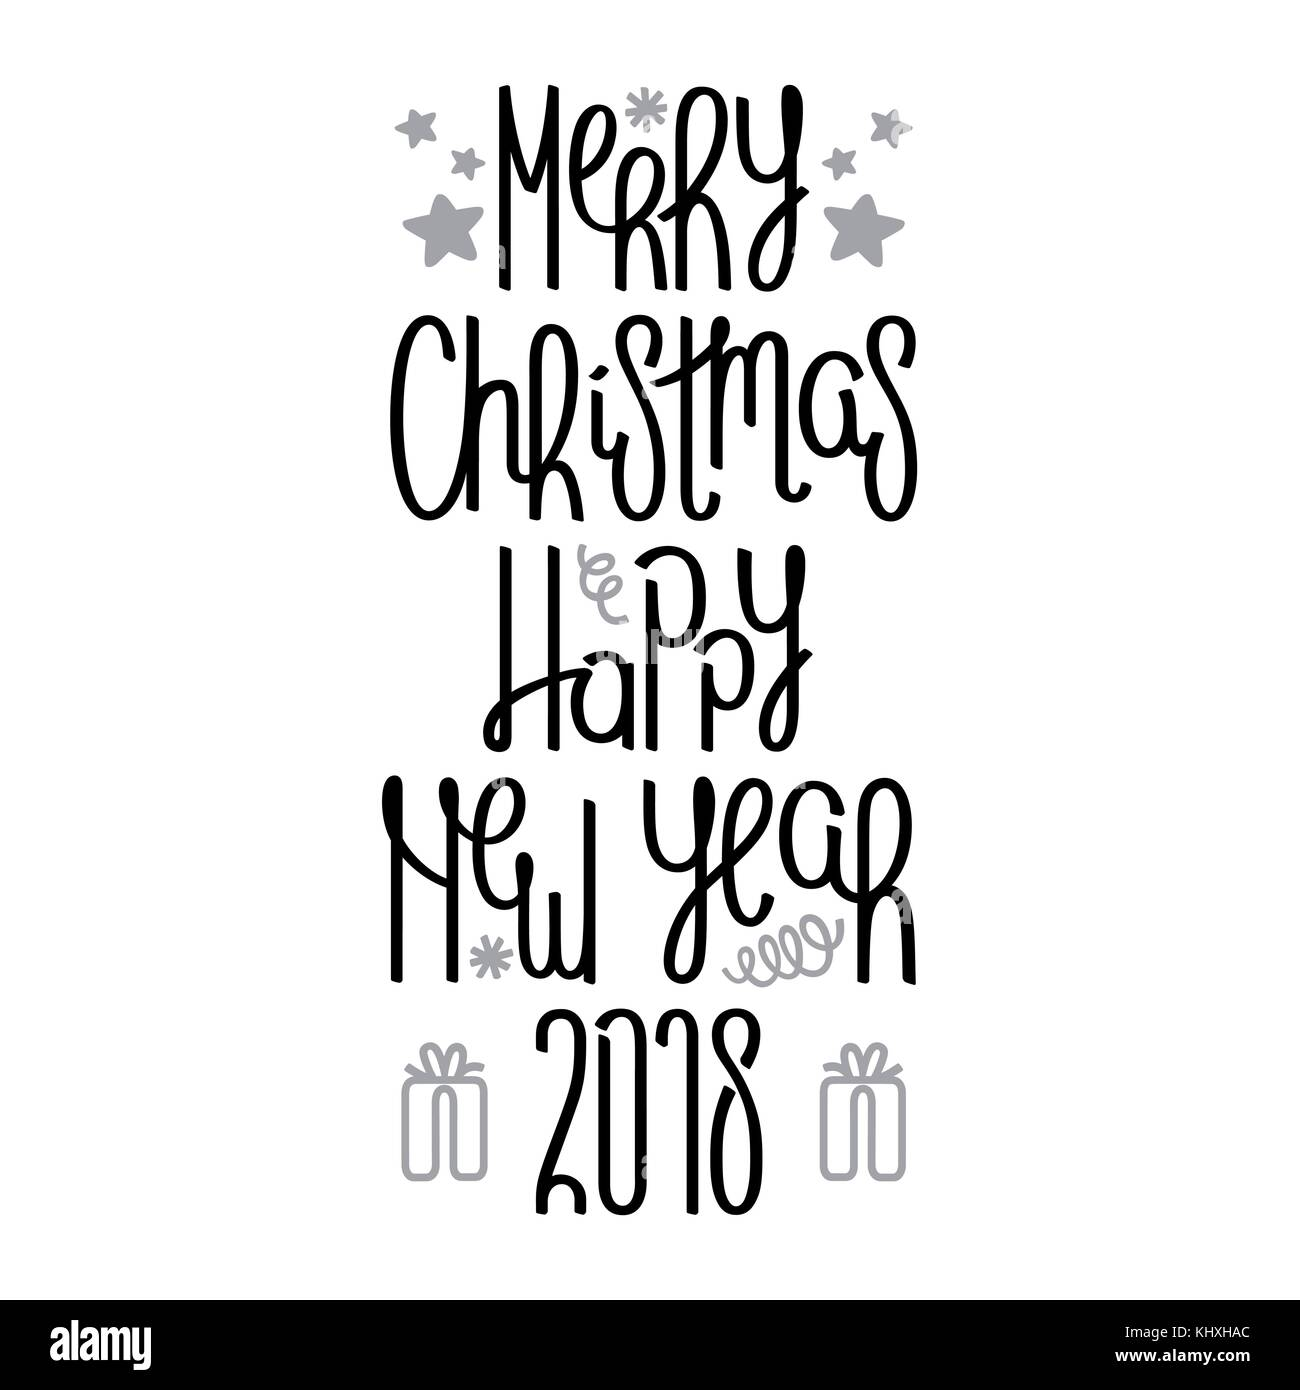 Merry Christmas and Happy New Year. Handwritten calligraphy composition. Vector design elements Stock Vector